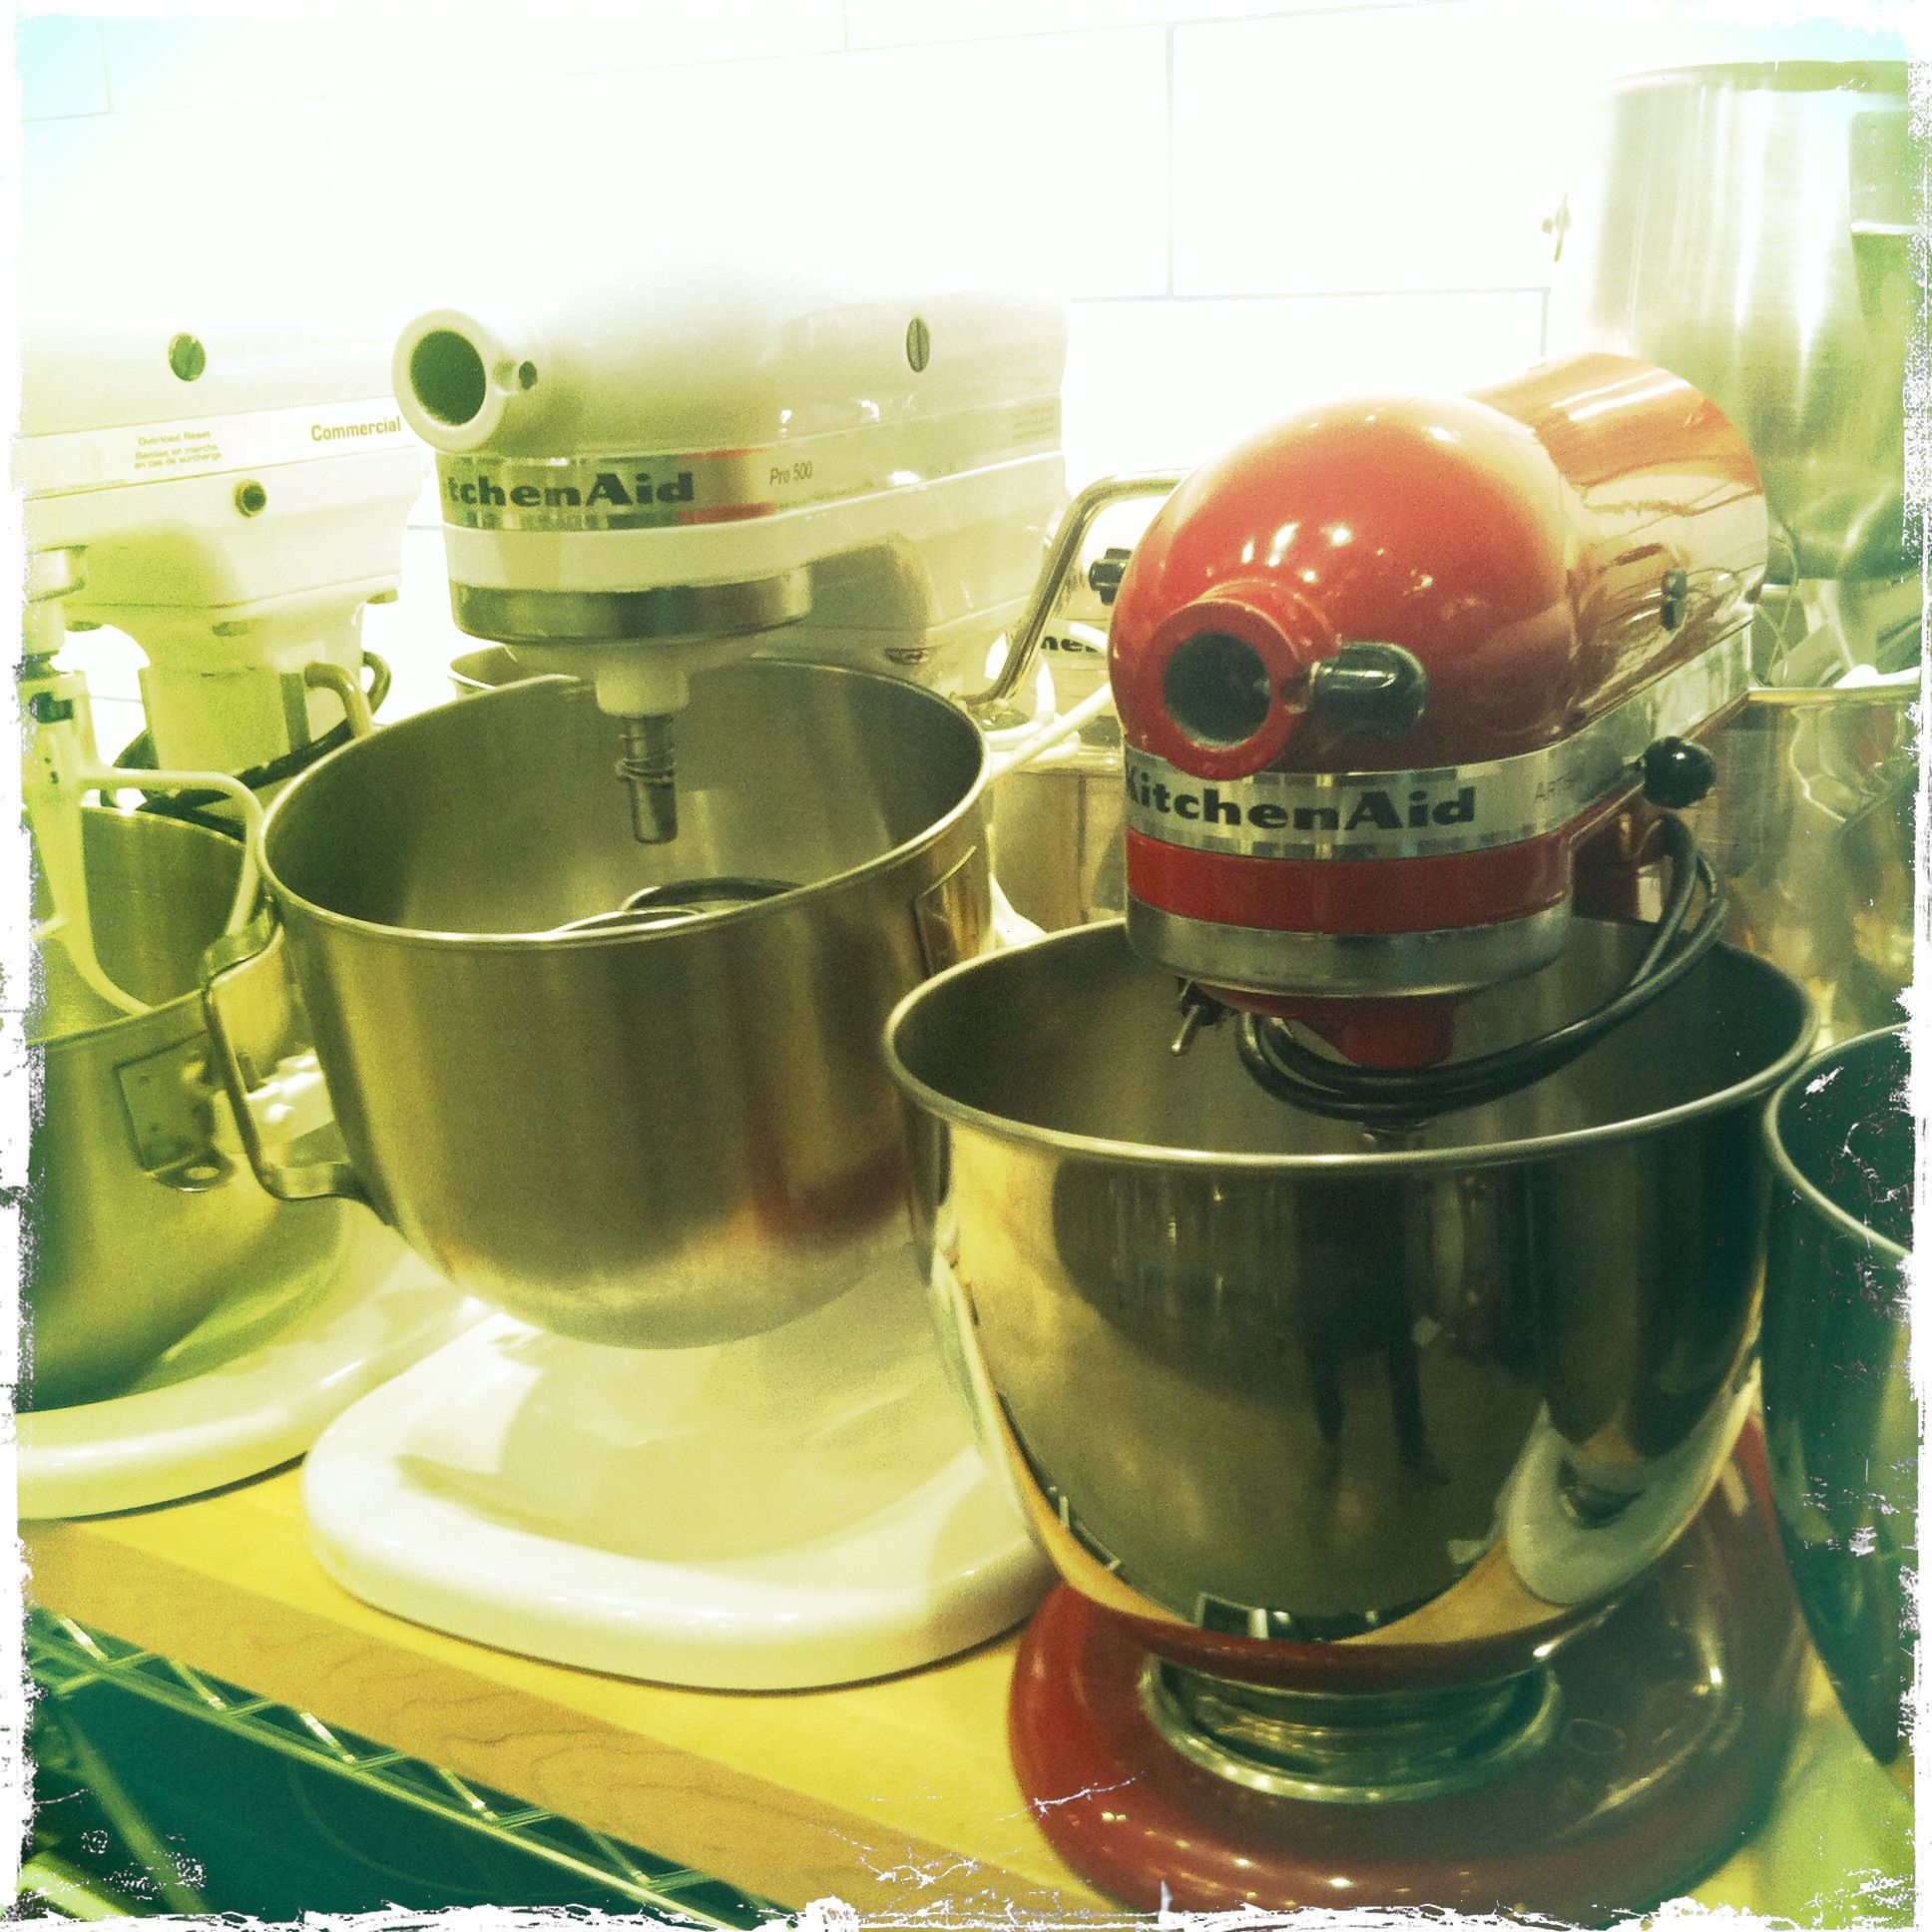 My favorite kitchen appliance. (With images) Favorite